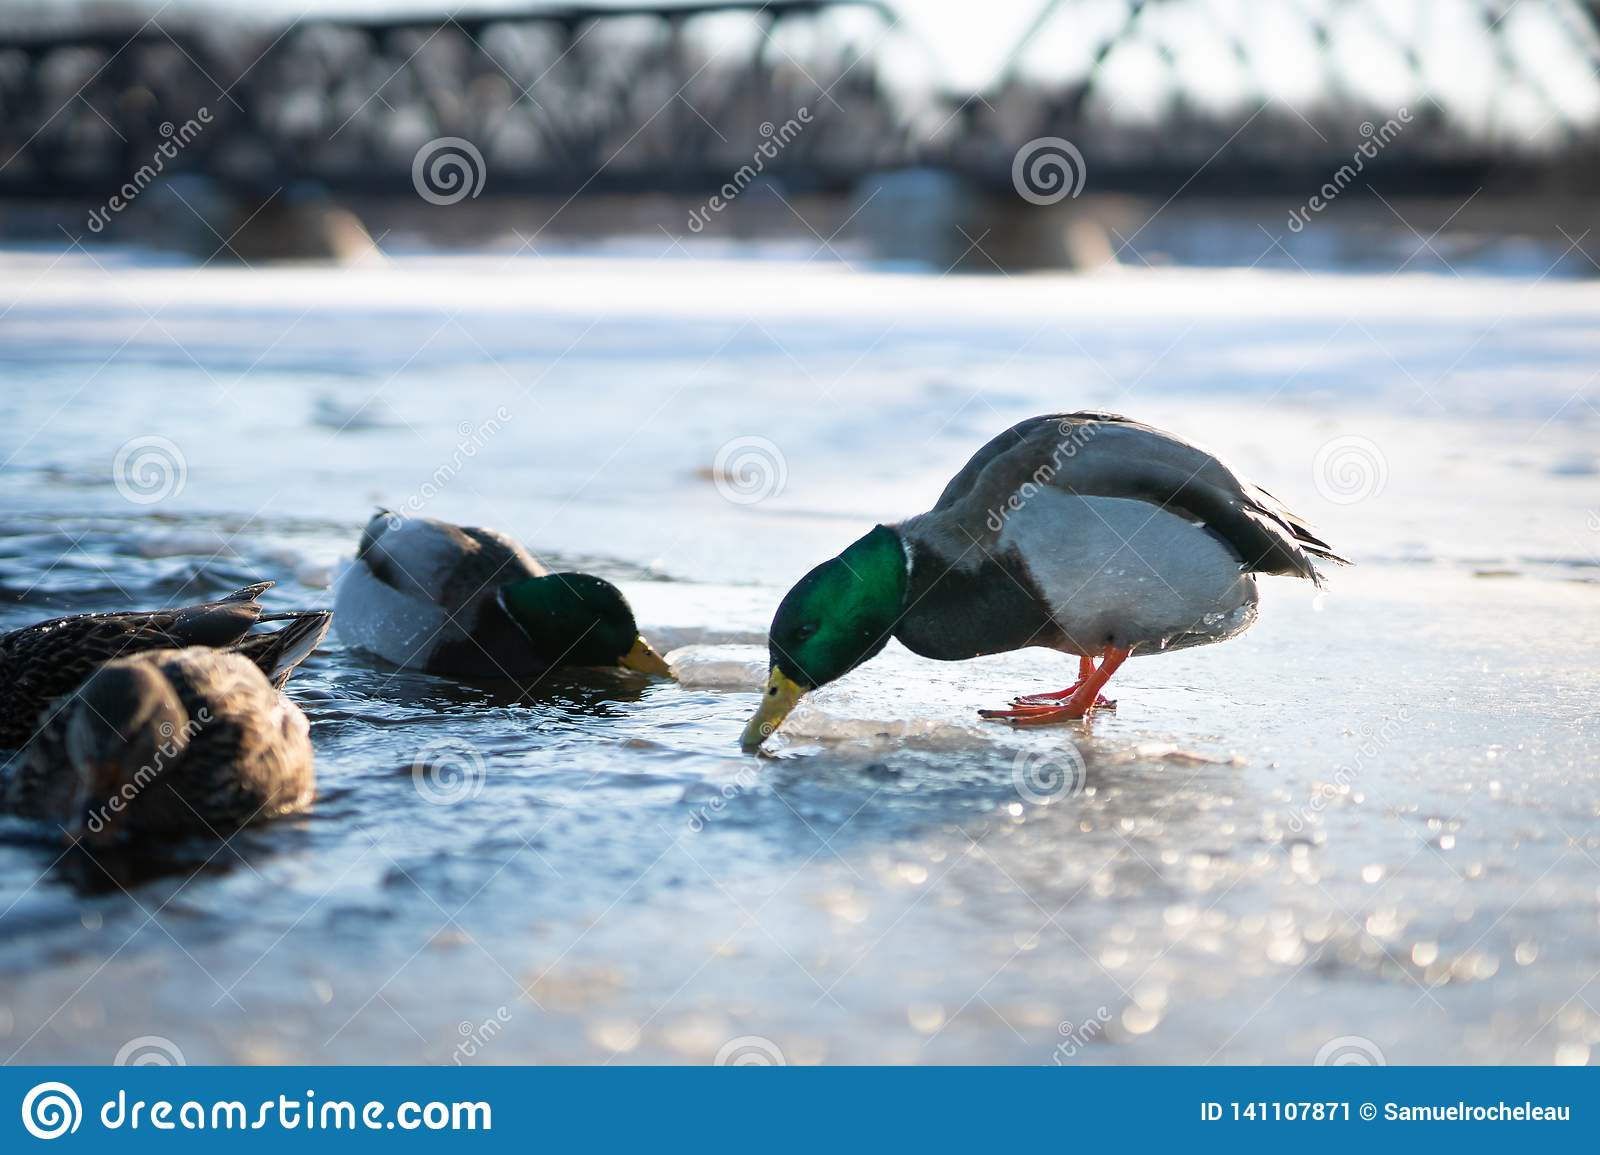 Mallard male duck about to dive in the in the cold water of a frozen river lake or pond in a winter sunset light